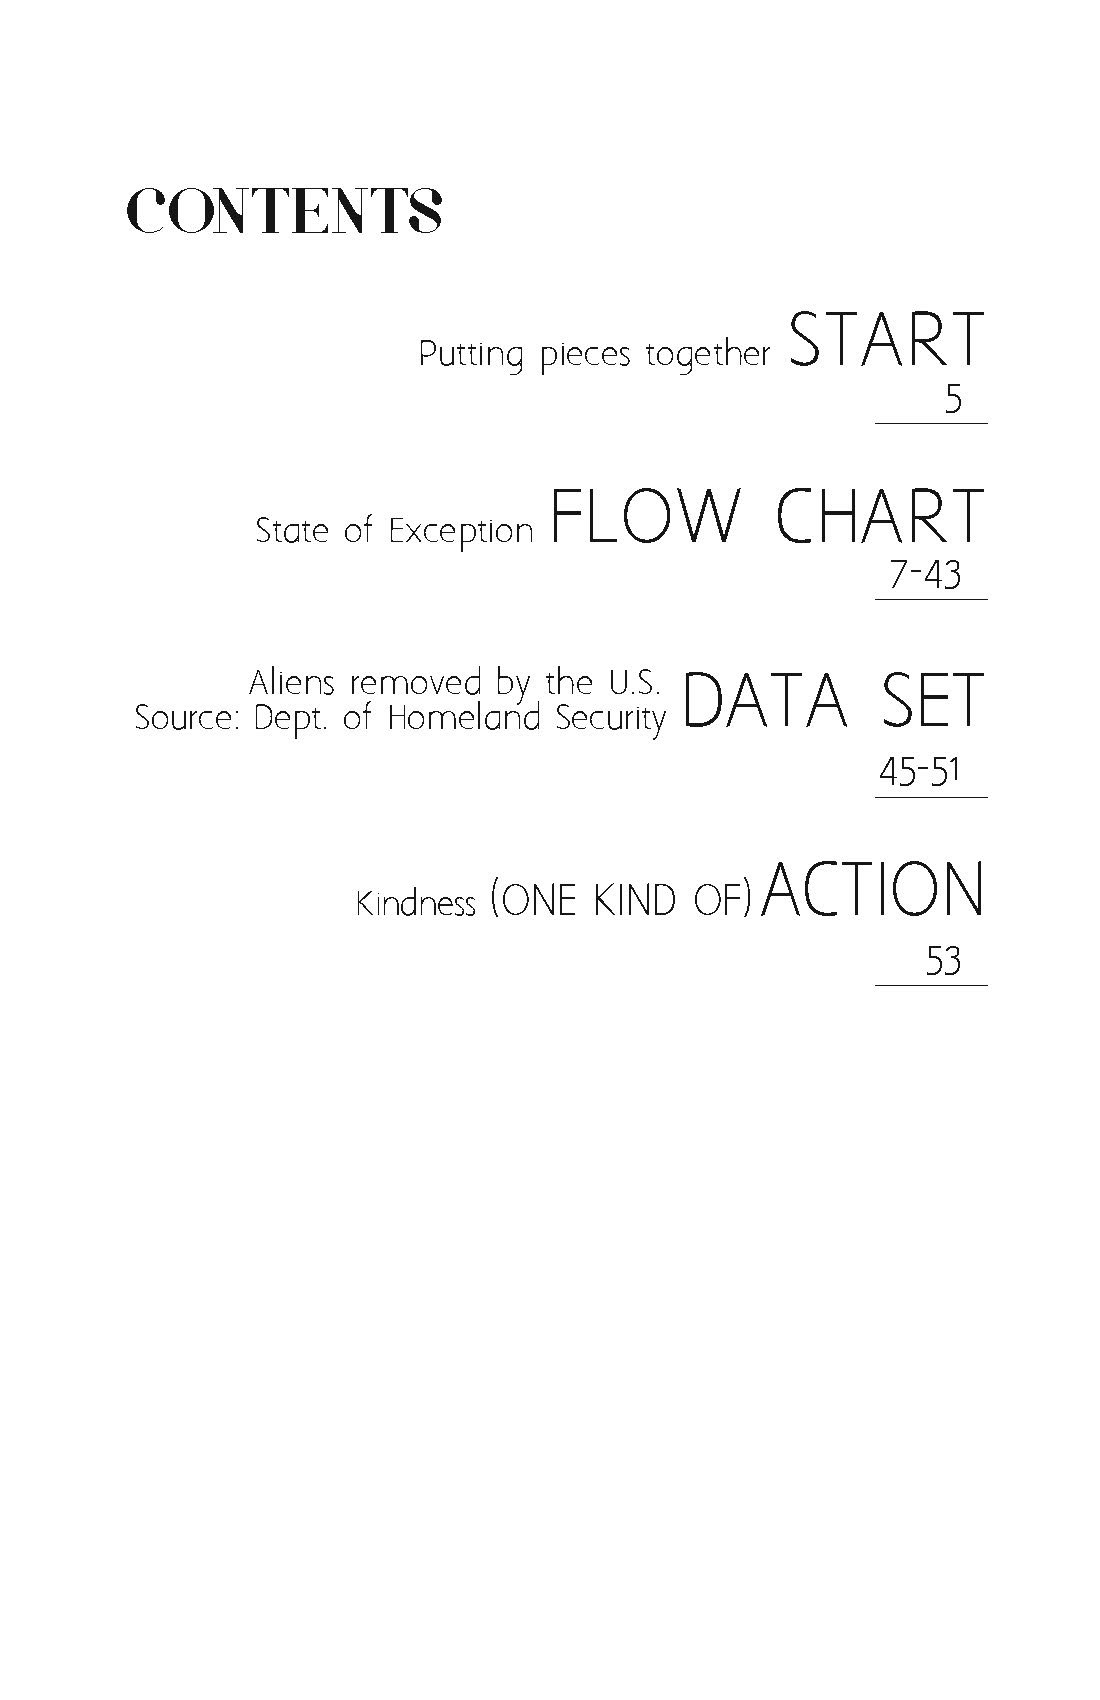 Patterns of Action Issue 3 table of contents